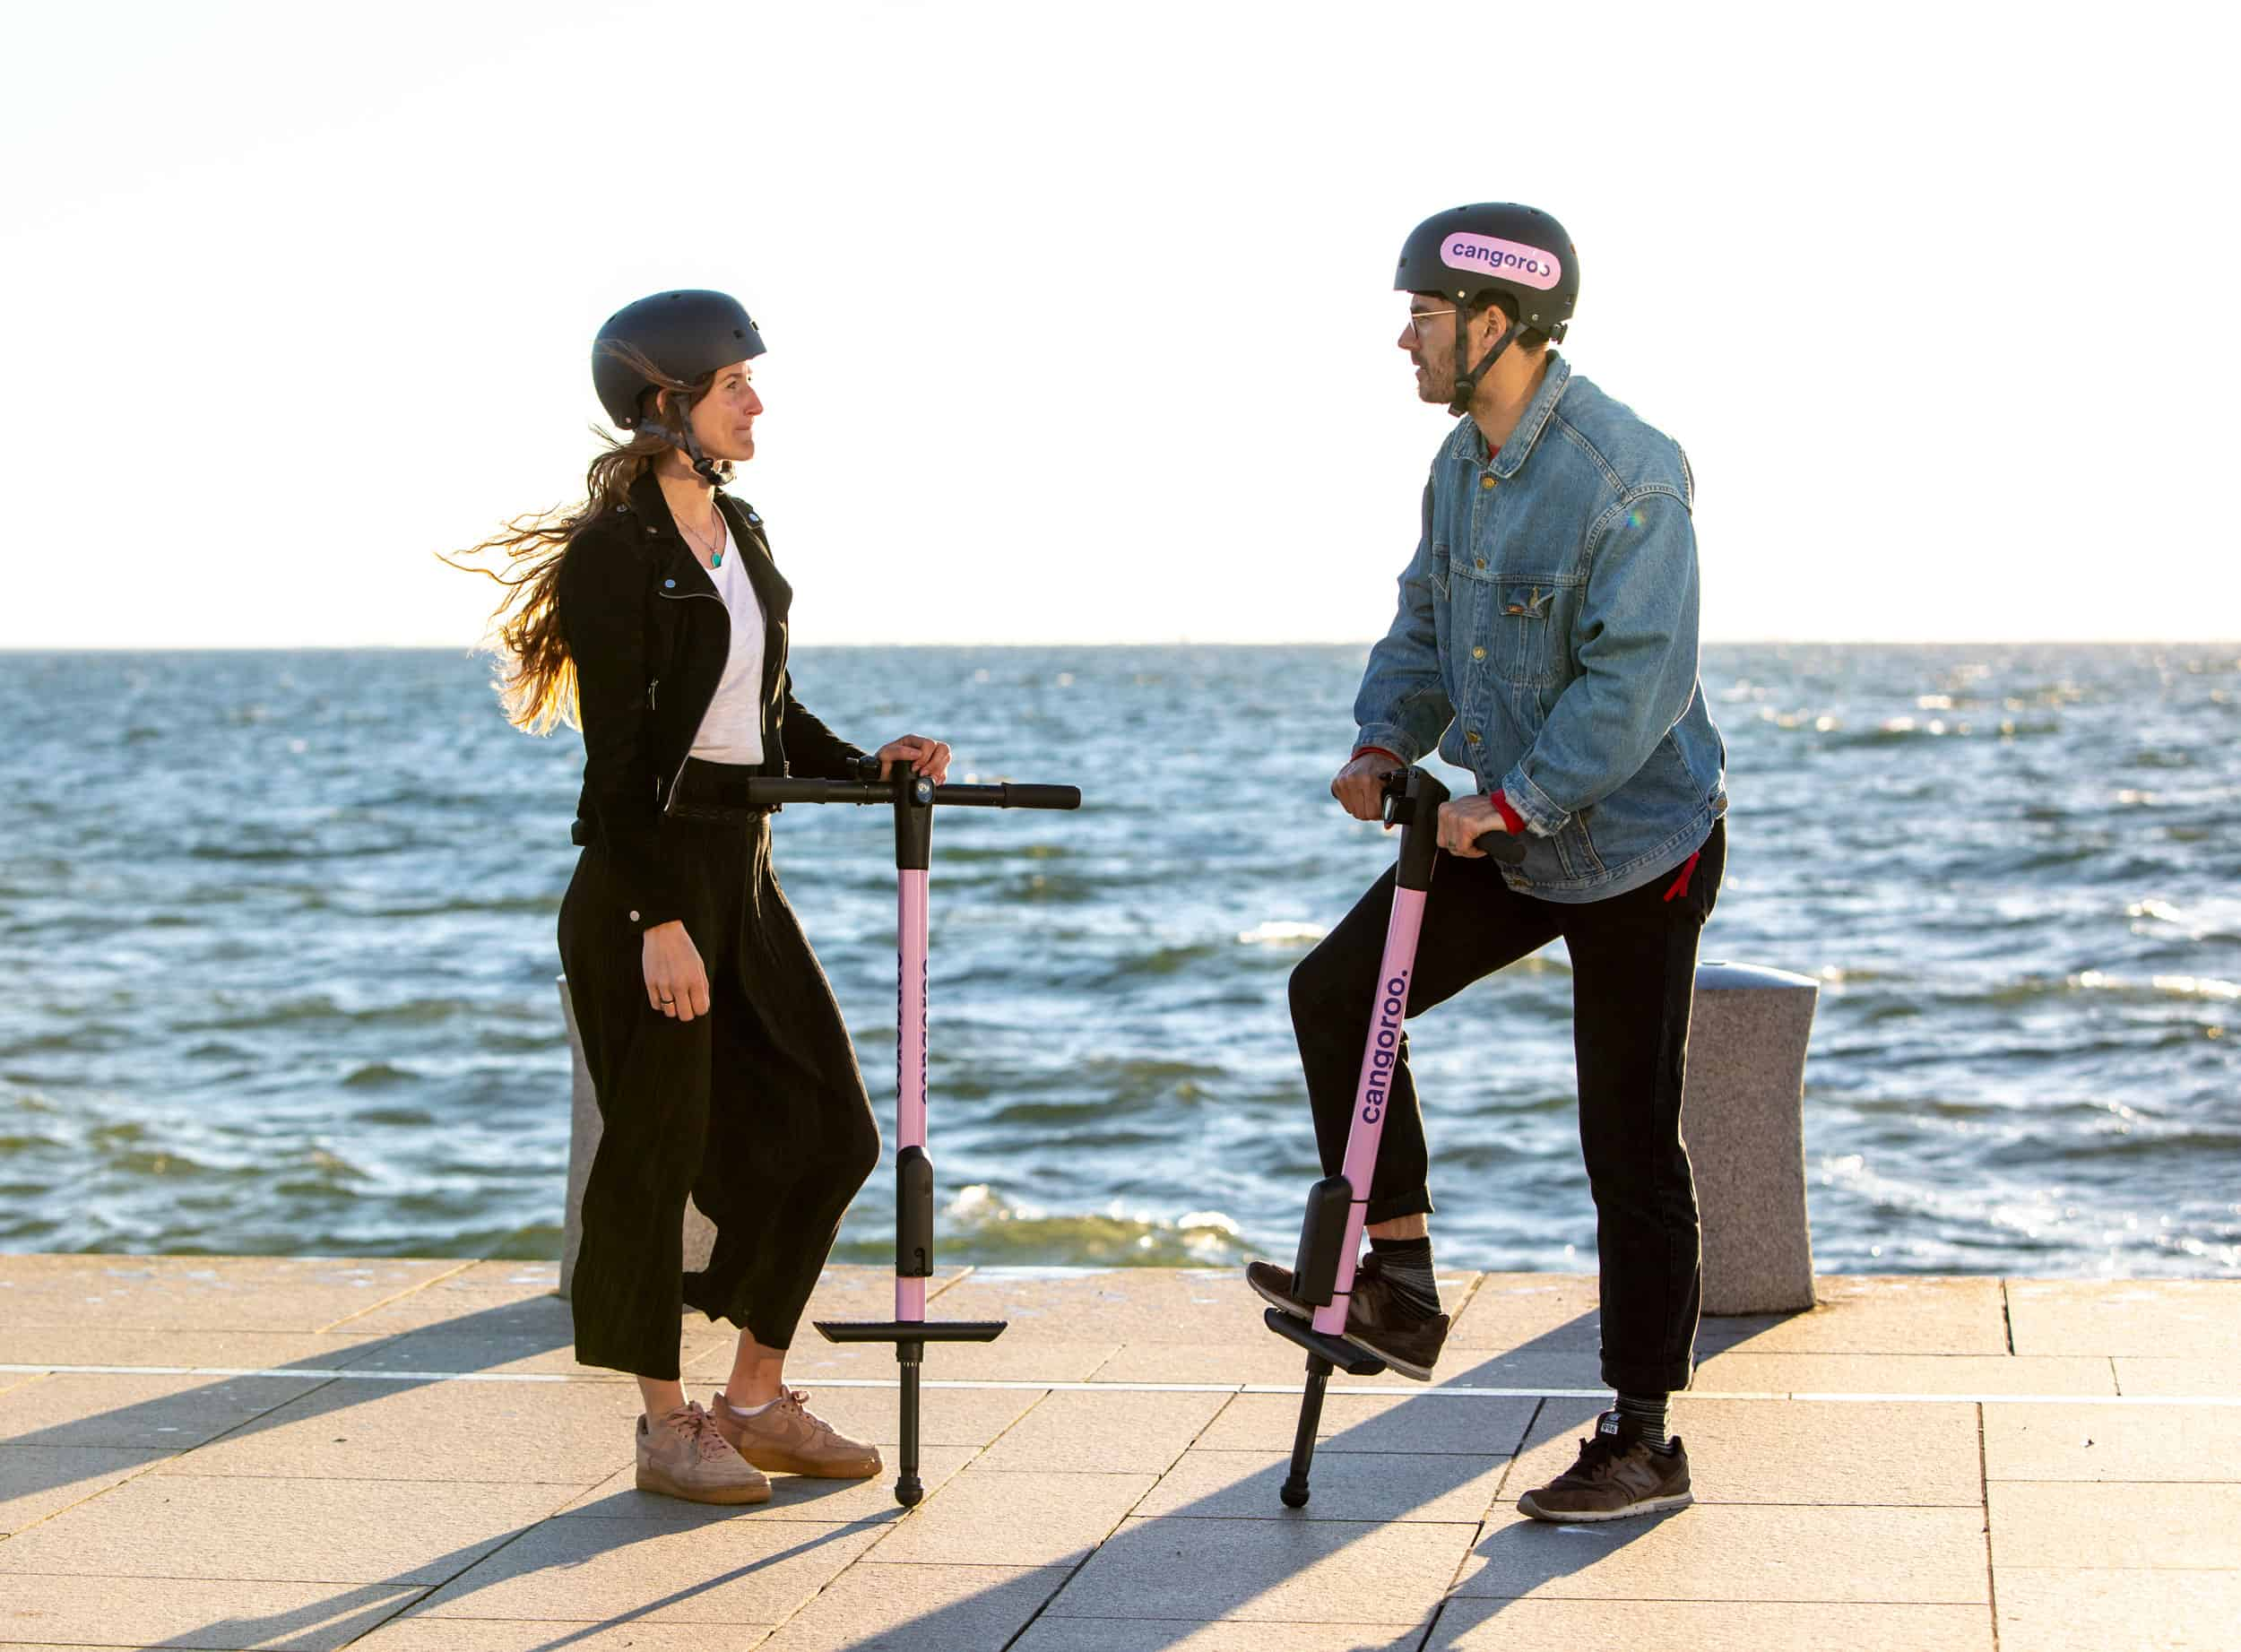 A Man And A Woman On Cangoroo Pogo Sticks